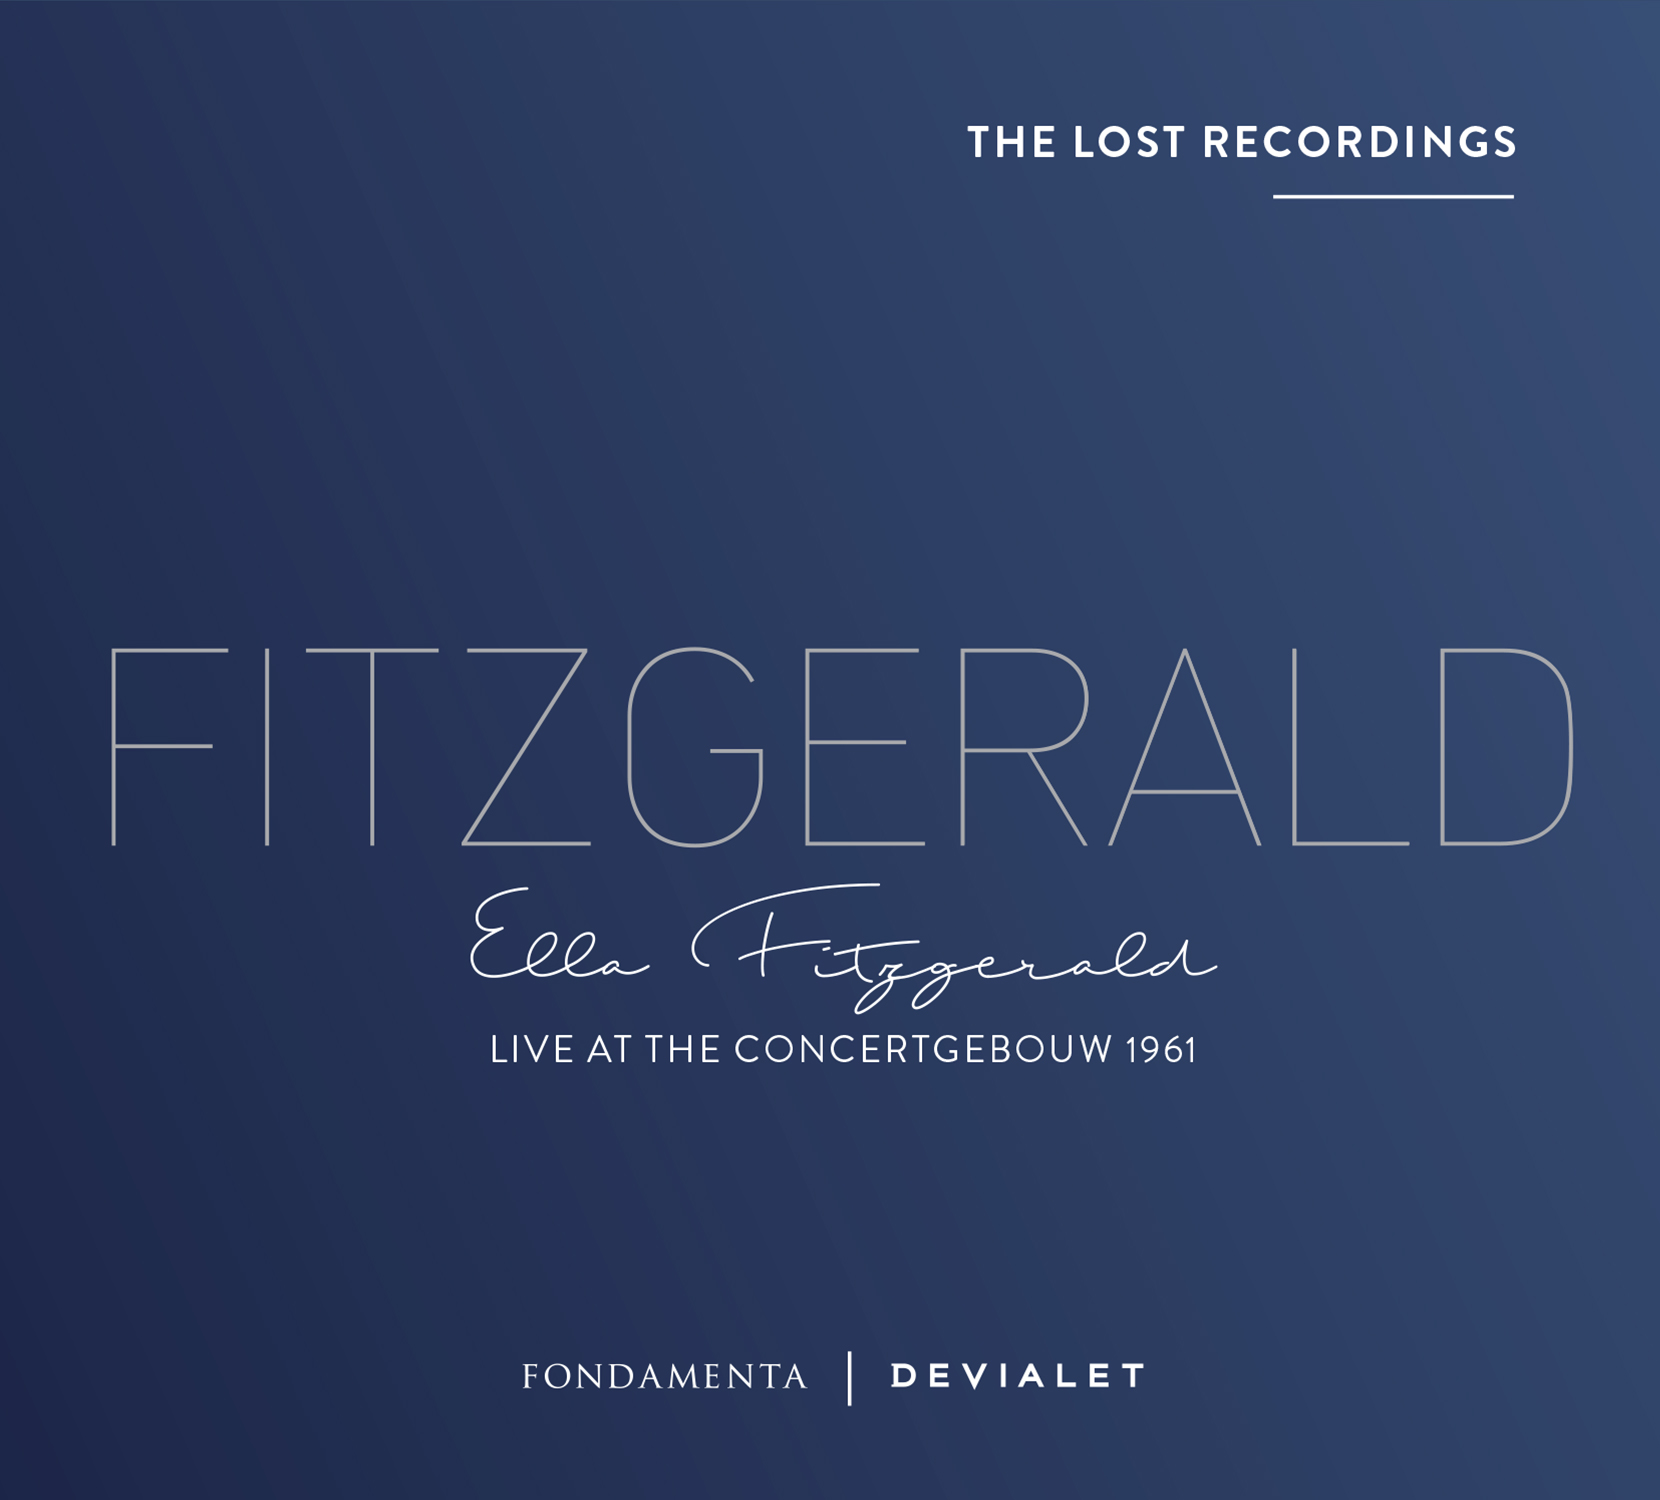 Fitzgerald front